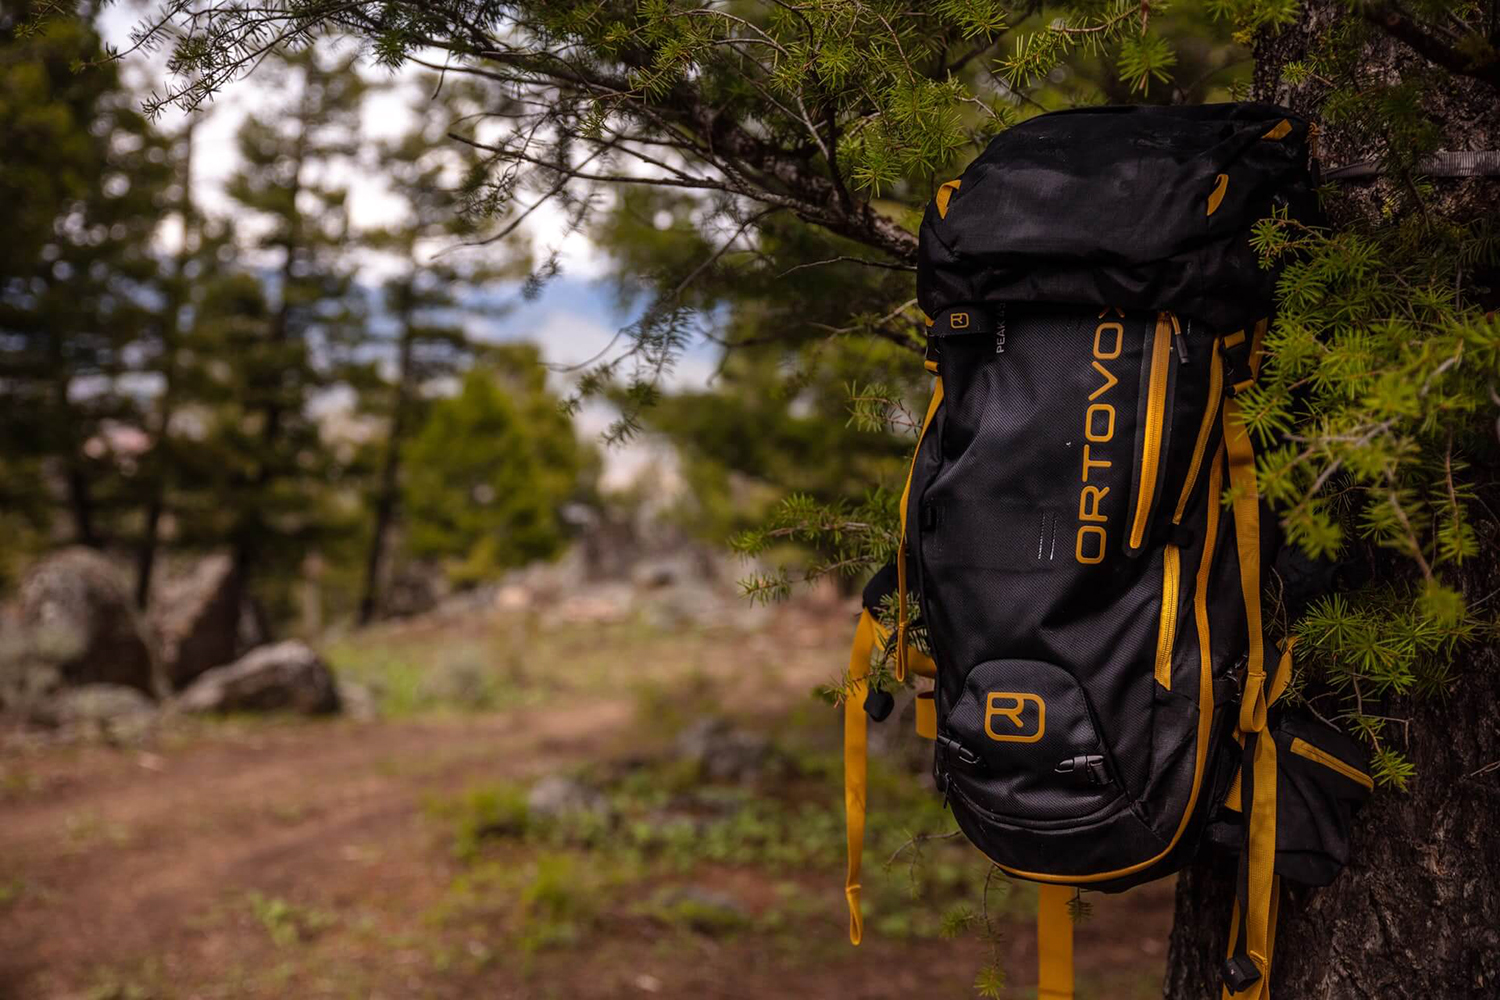 backpack item for glamping trip